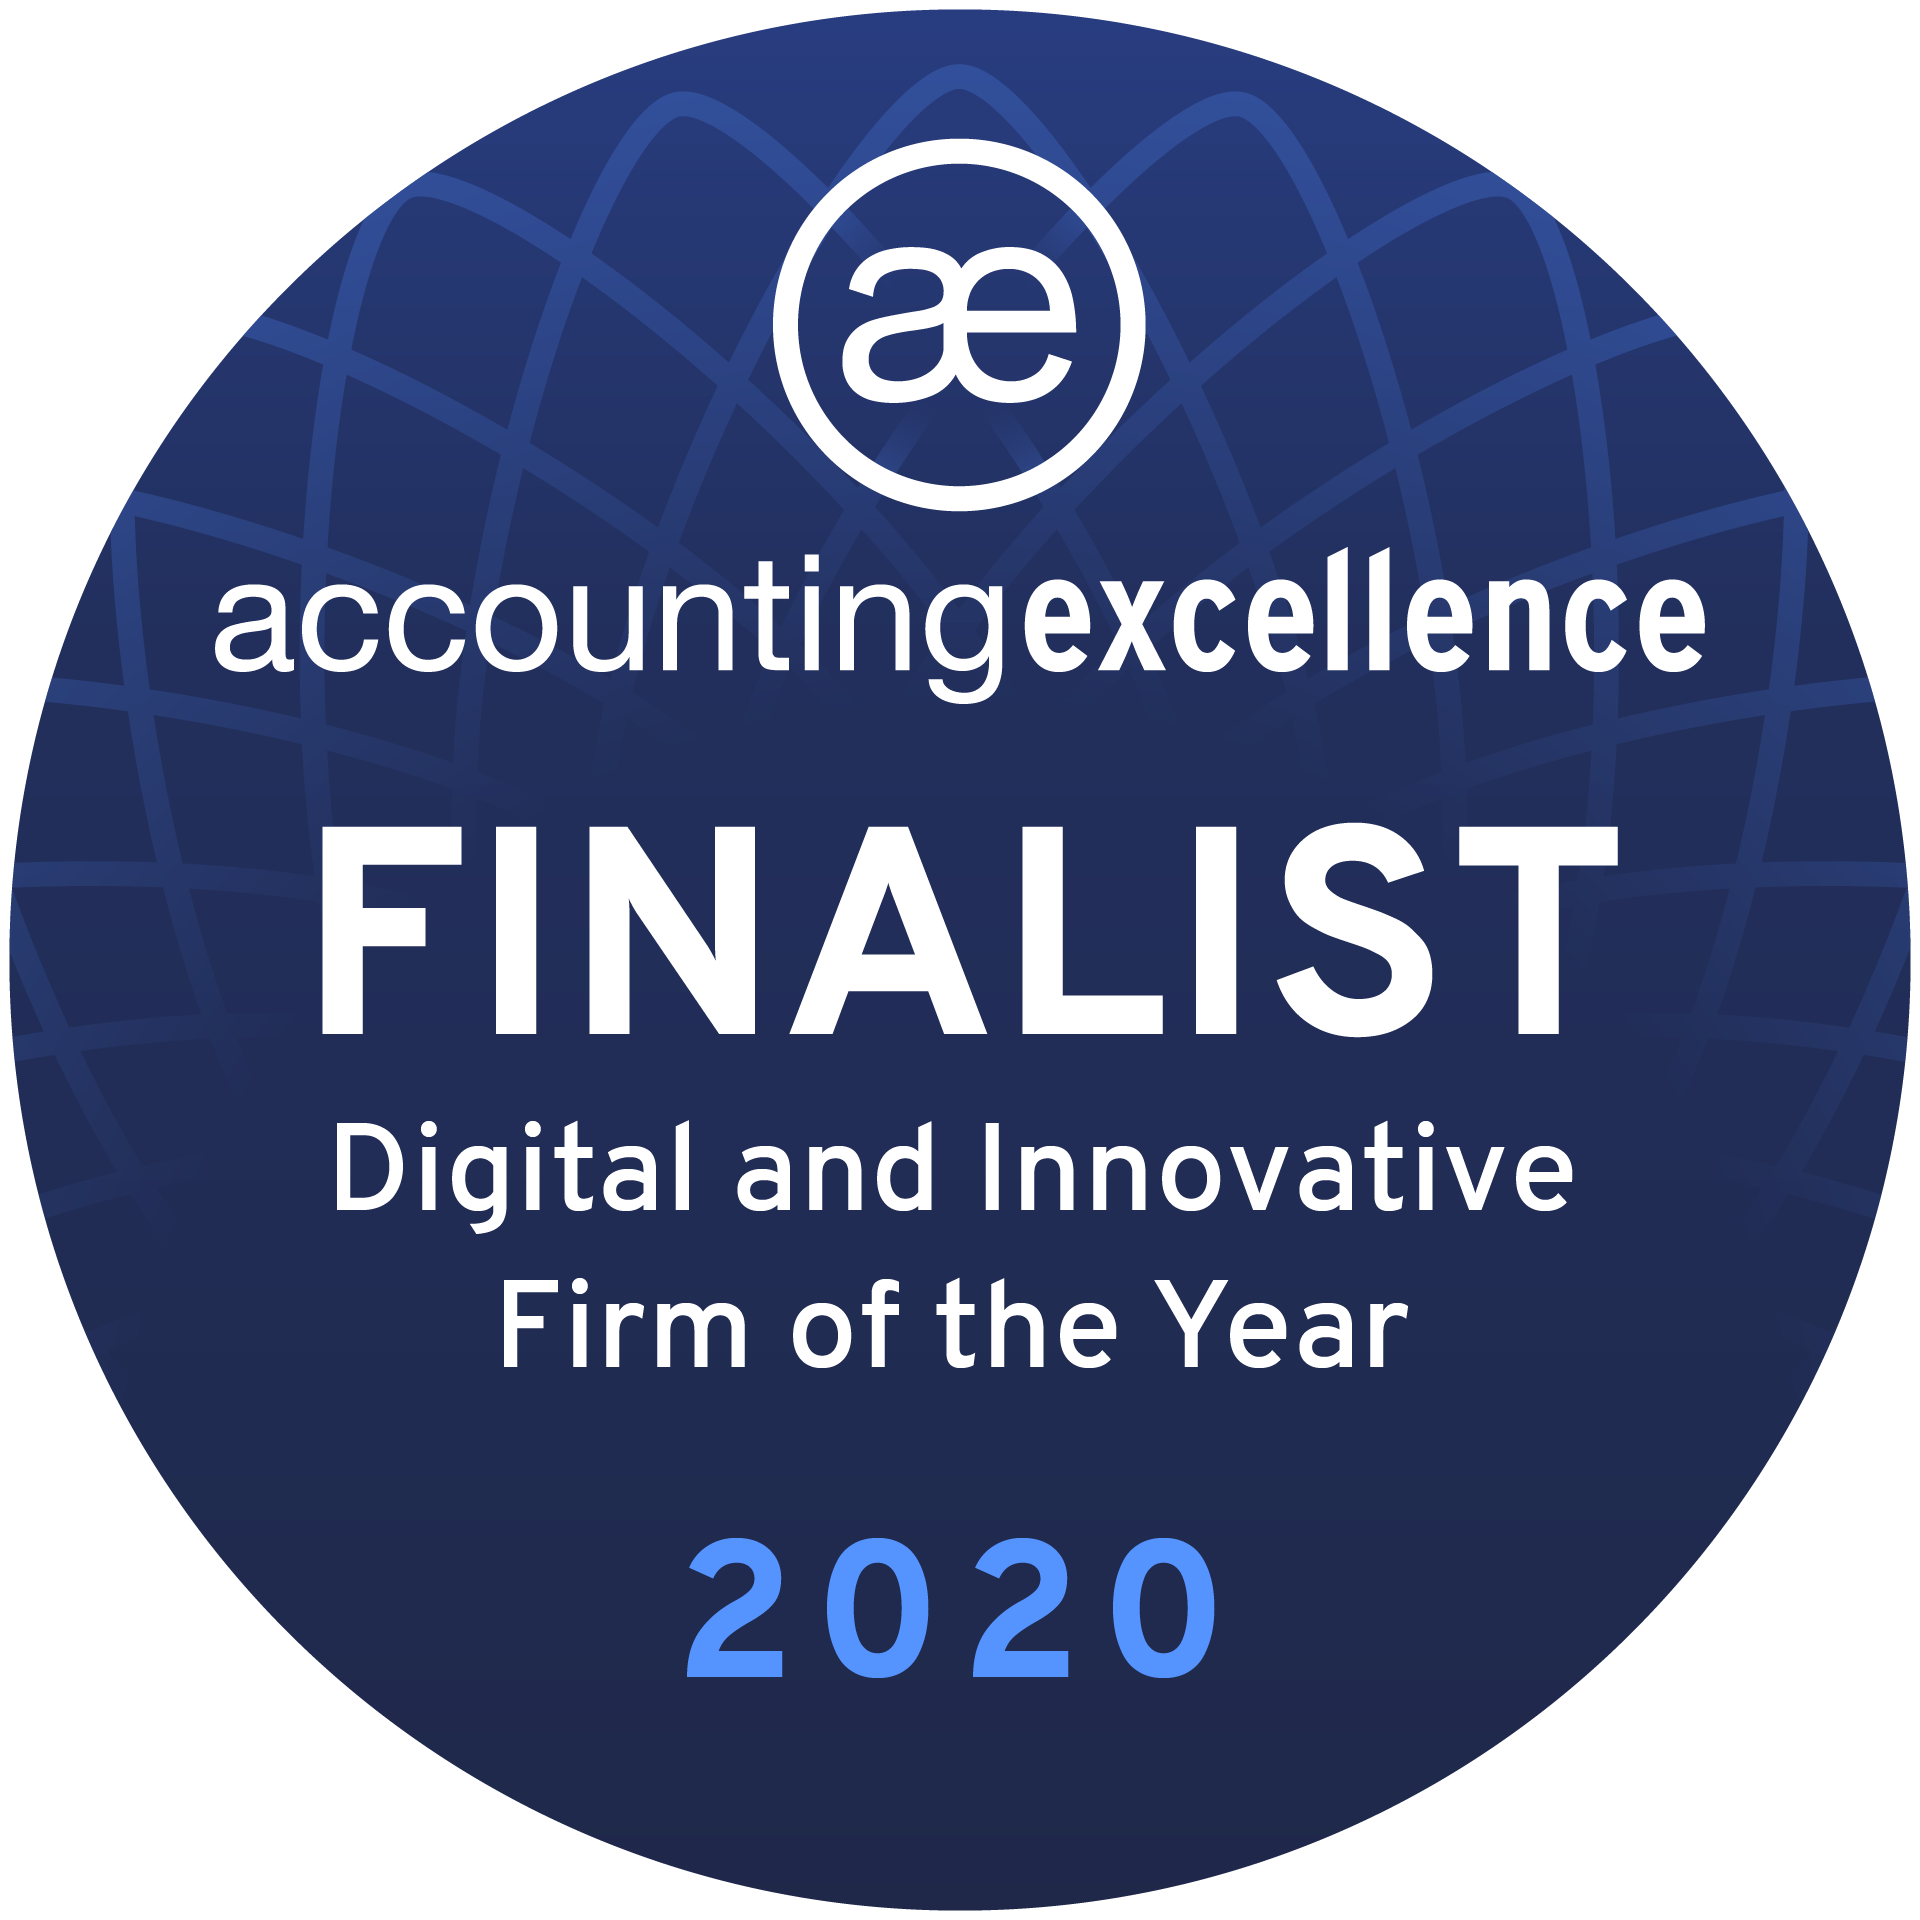 1. Digital-and-Innovative-Firm-of-the-Year---Finalist-Badge-1